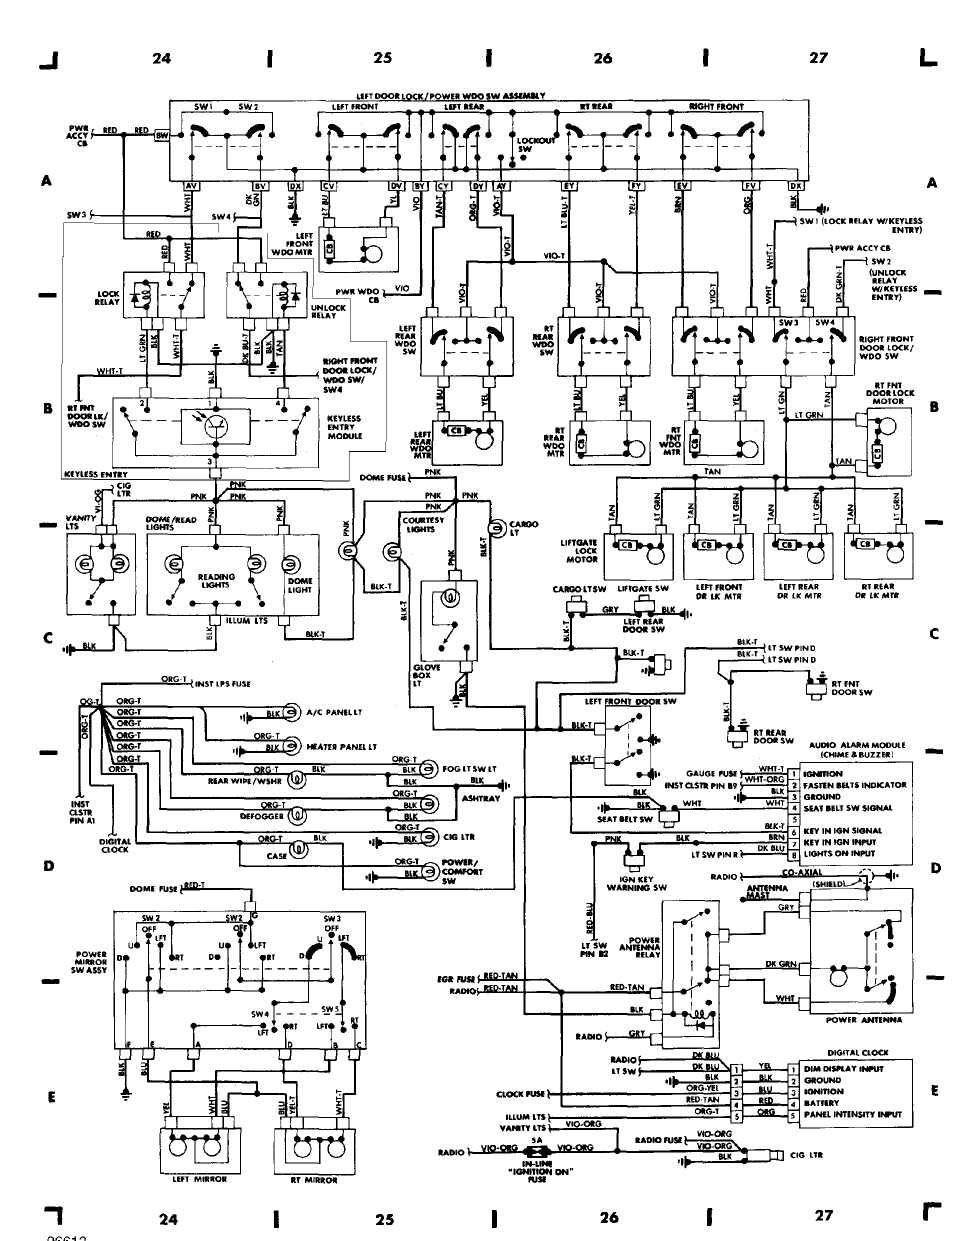 wiring_diagrams_html_61f5e0ad wiring diagrams 1984 1991 jeep cherokee (xj) jeep 1995 jeep cherokee fuse box diagram at gsmportal.co